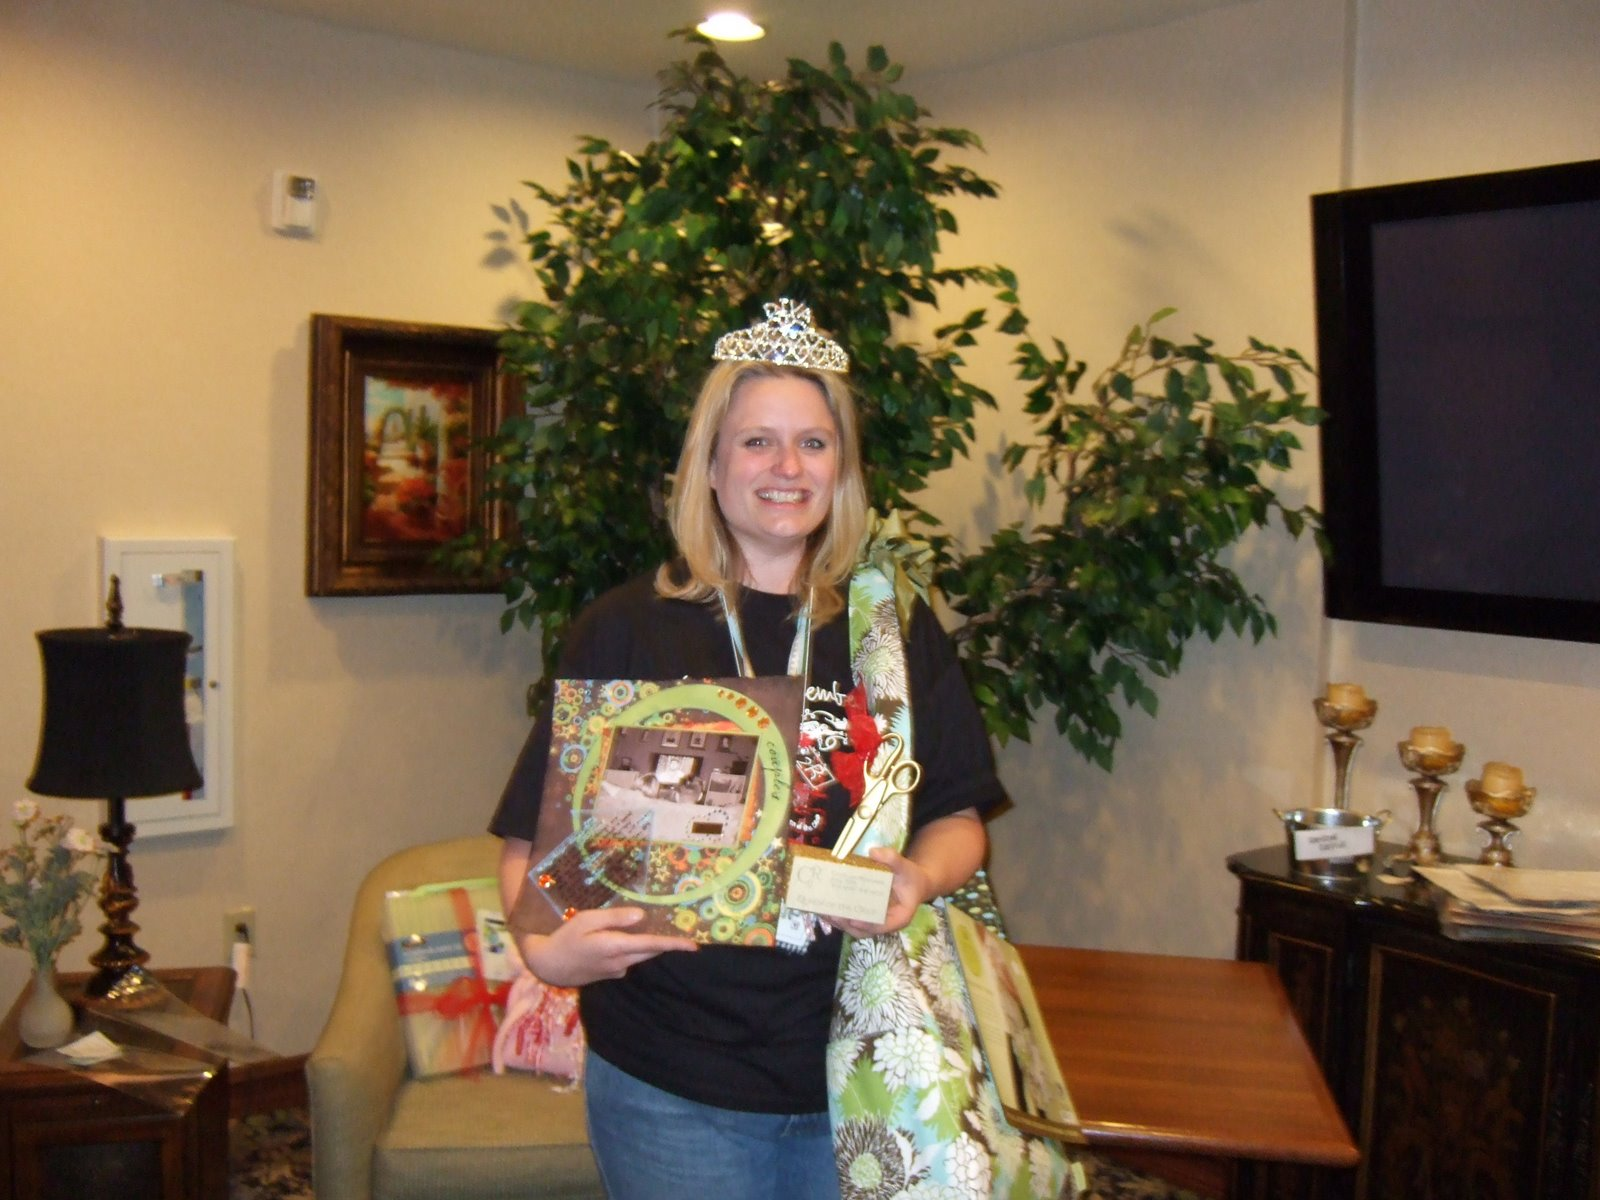 Our April 2008 C2R Queen of the Crop!